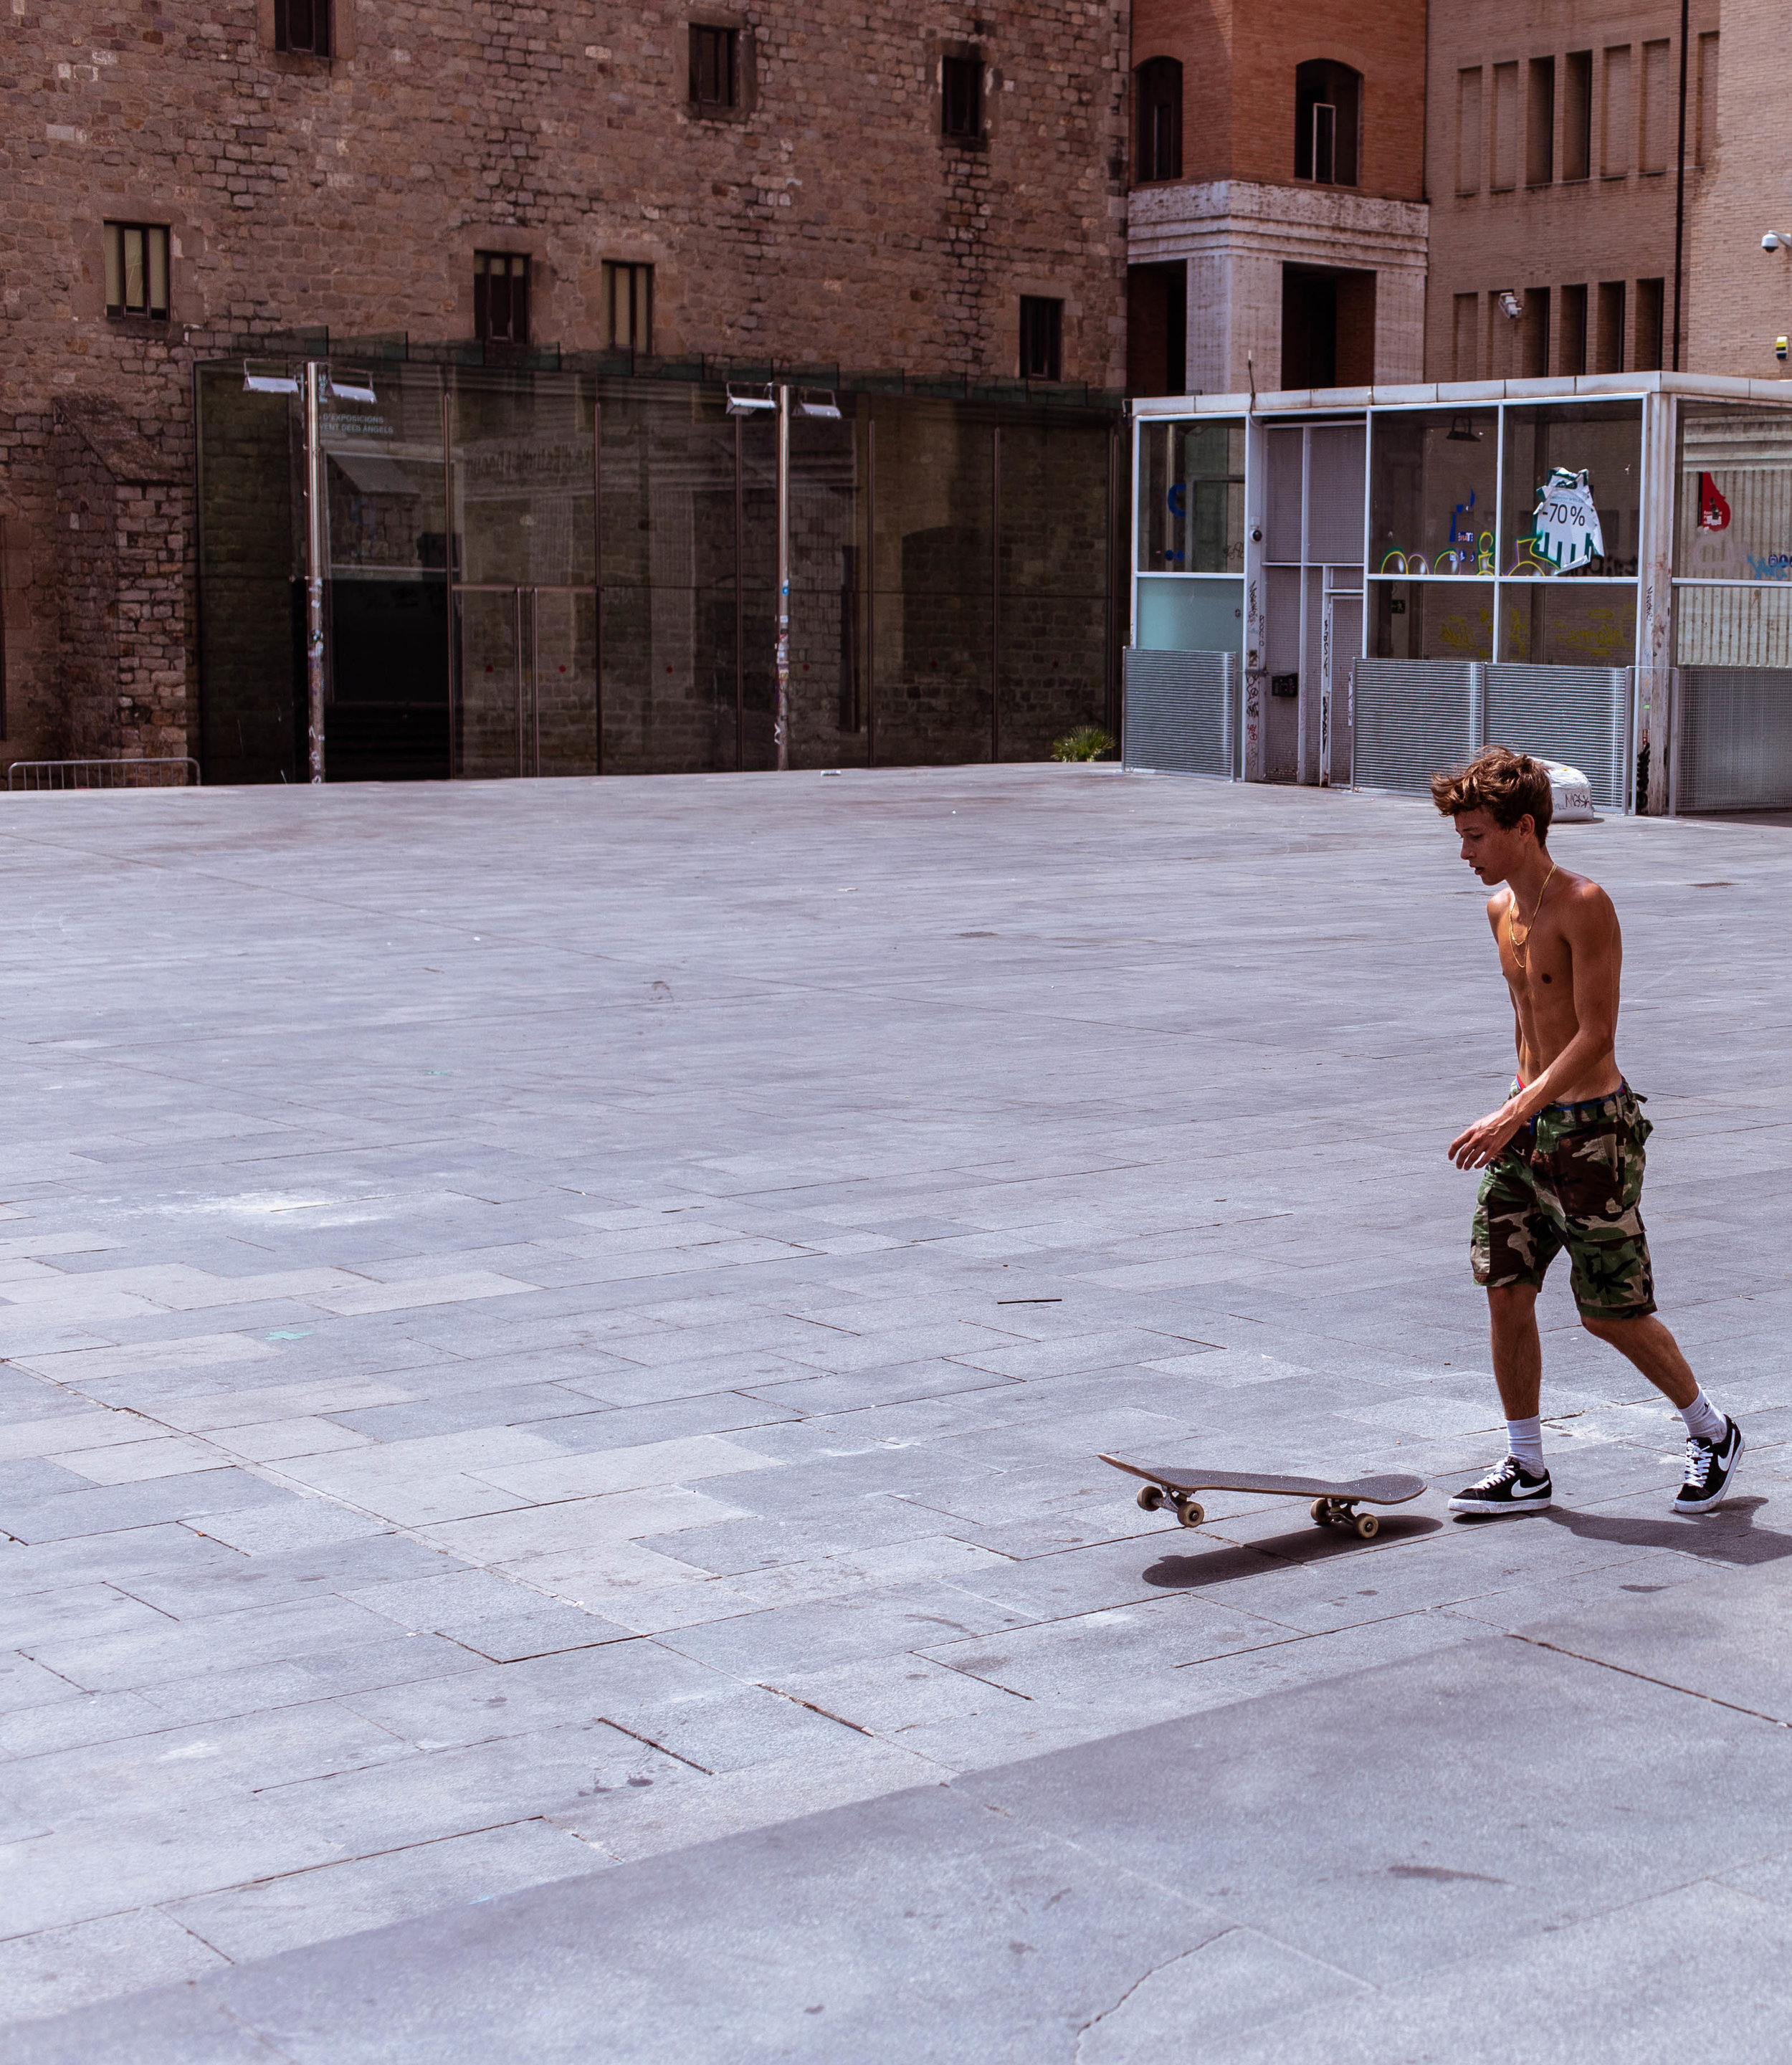 young skater 2 (1 of 1).jpg